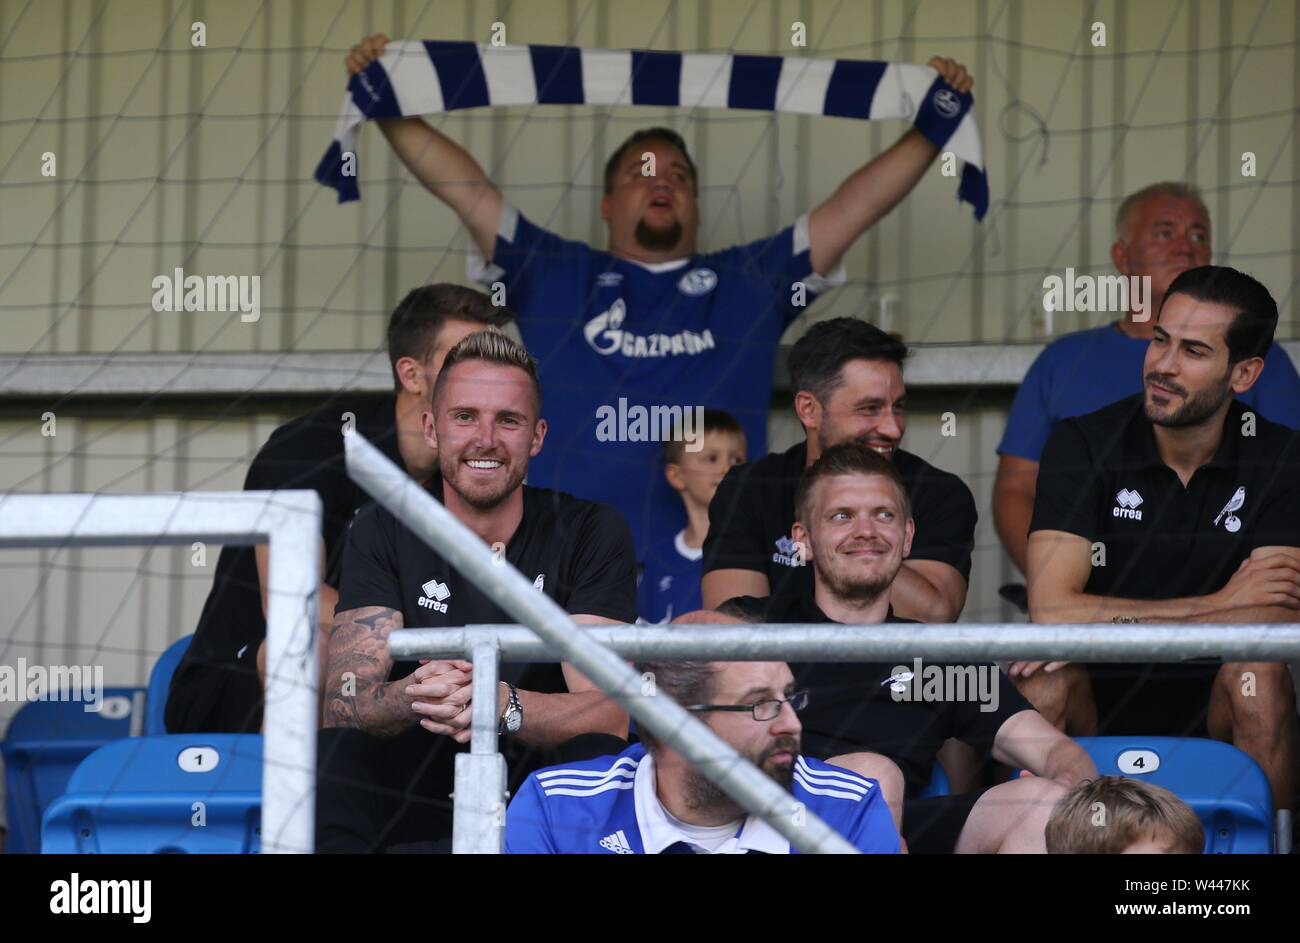 Lotte, Deutschland. 19th July, 2019. firo: 19.07.2019, football, 1.Bundesliga, season 2019/2020, friendly match, FC Schalke 04 - Norwich City goalkeeper Ralf FAHRMANN, Norwich at the Tribune | usage worldwide Credit: dpa/Alamy Live News - Stock Image